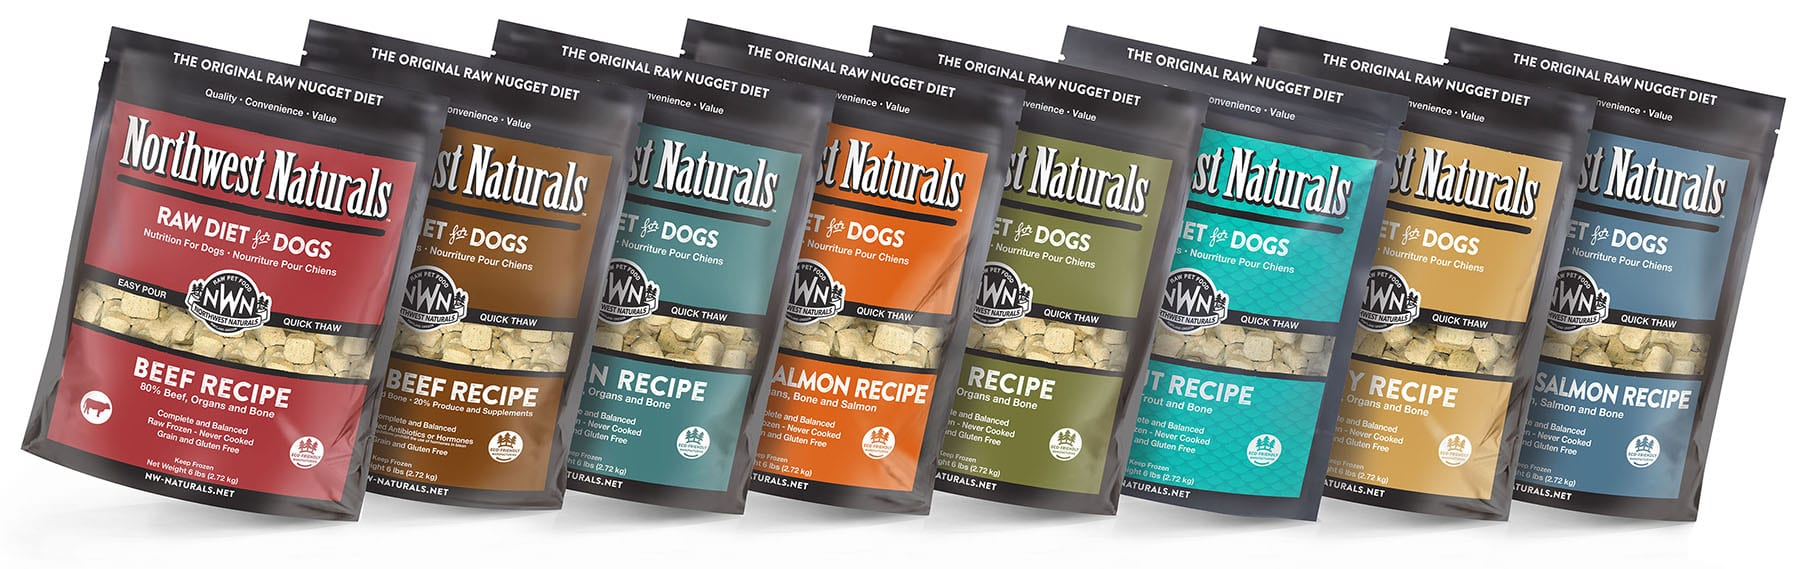 The Original Raw Nuggets for Dogs!